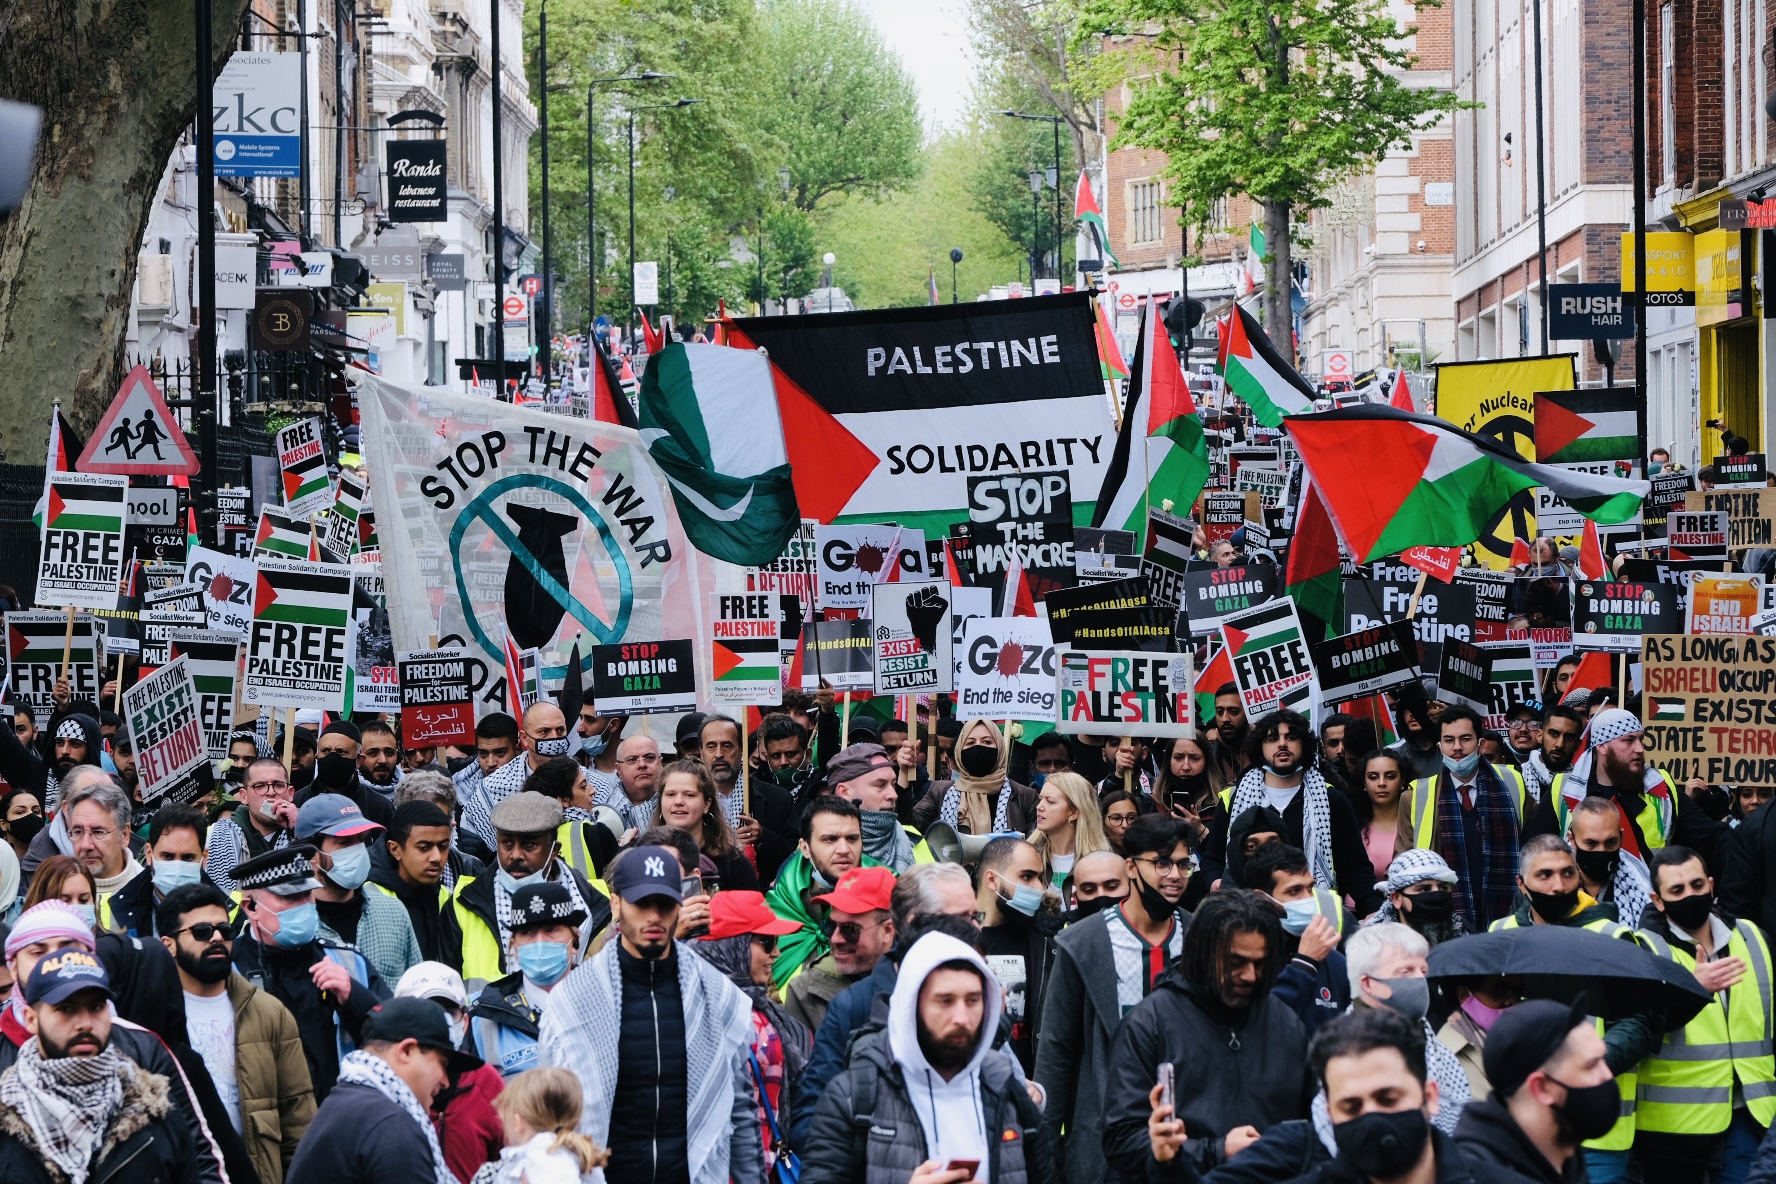 Report: 100,000 protesters take to streets of London in support of Palestine